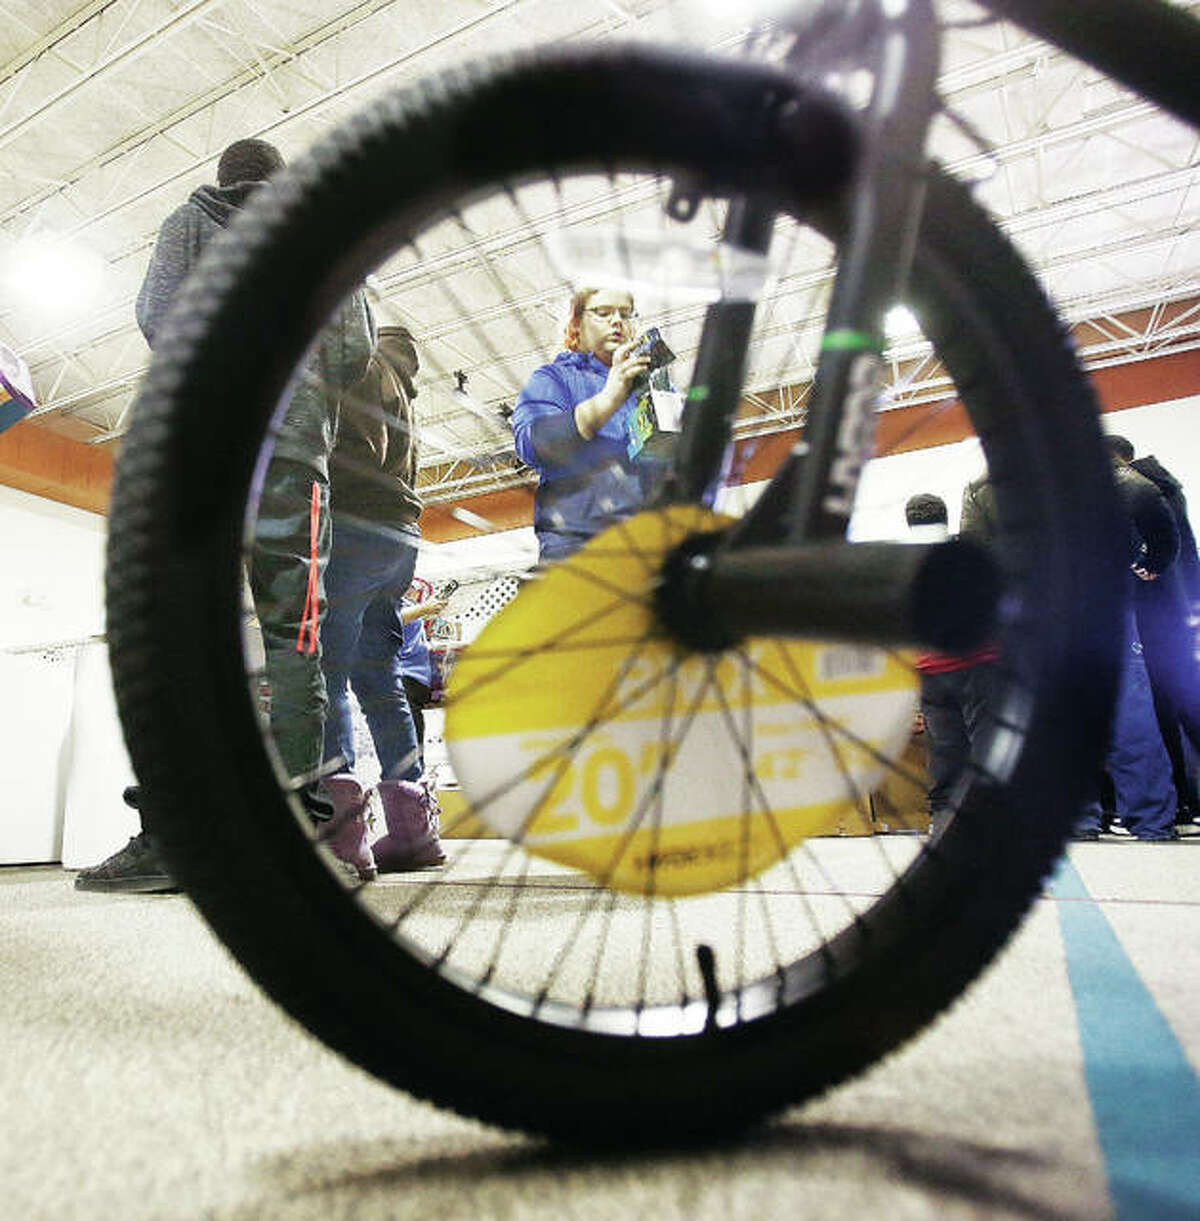 A volunteer from Alton High School, framed through the wheel of a new bicycle, helps sort Community Christmas toys last week at Main Street United Methodist Church in Alton.